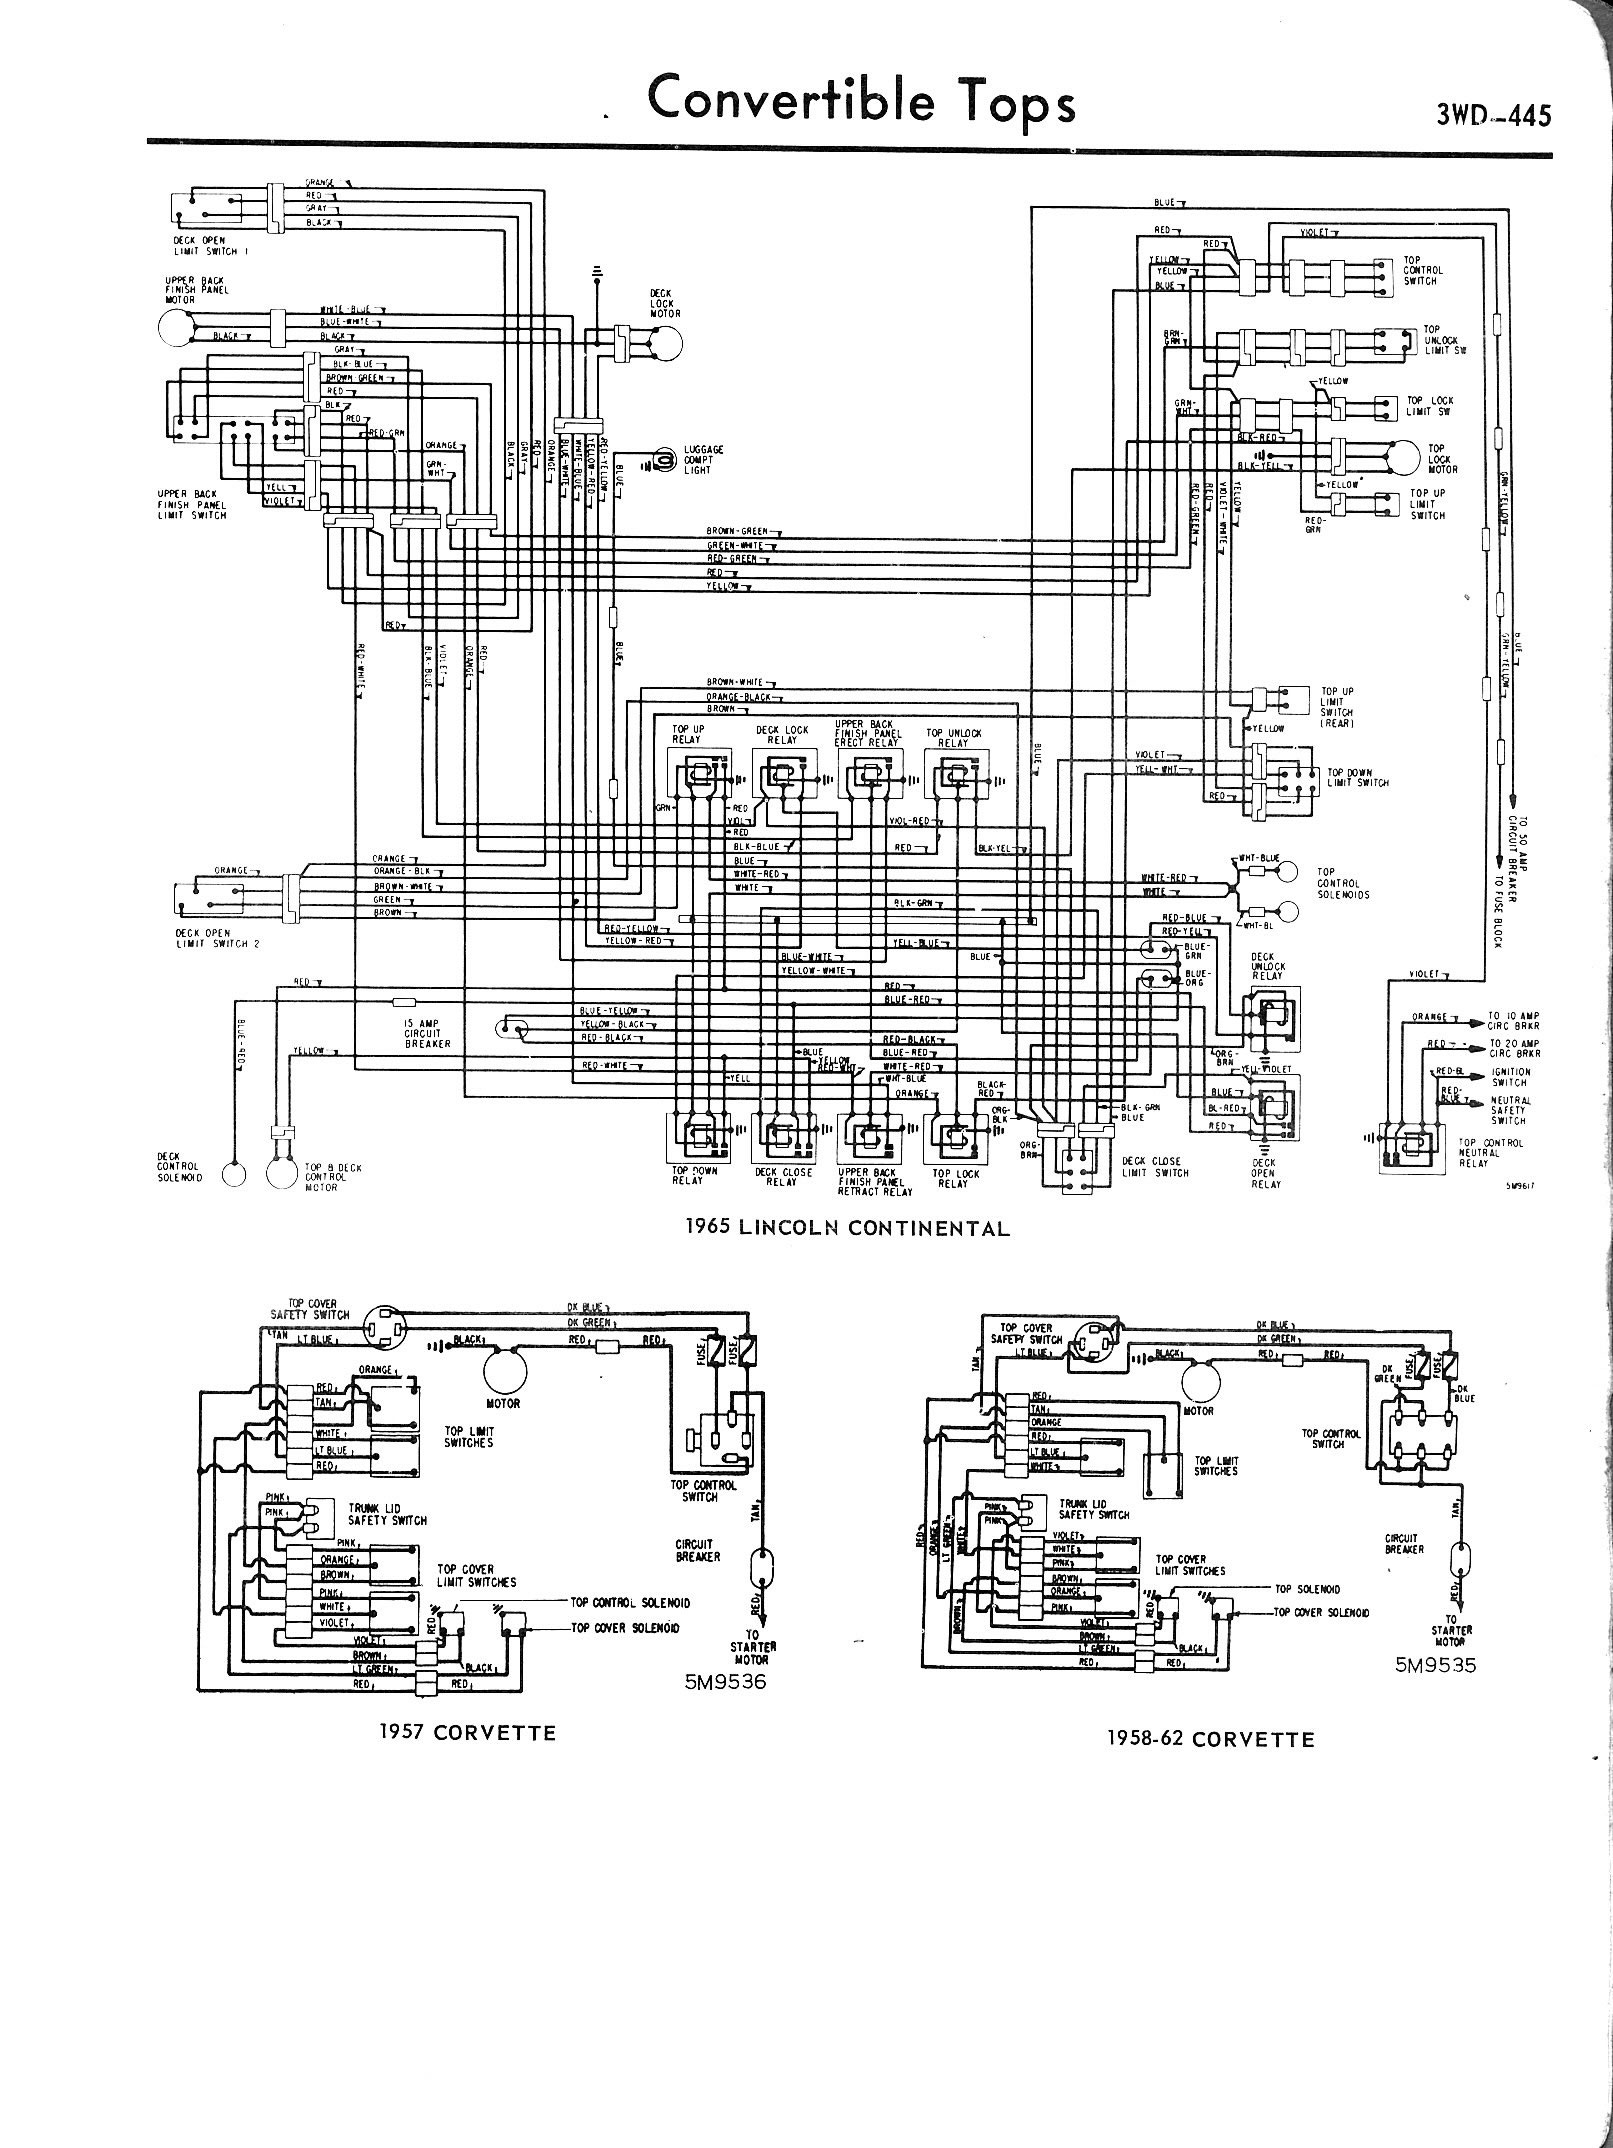 1964 Ford Thunderbird Vacuum Diagram. Ford. Auto Wiring